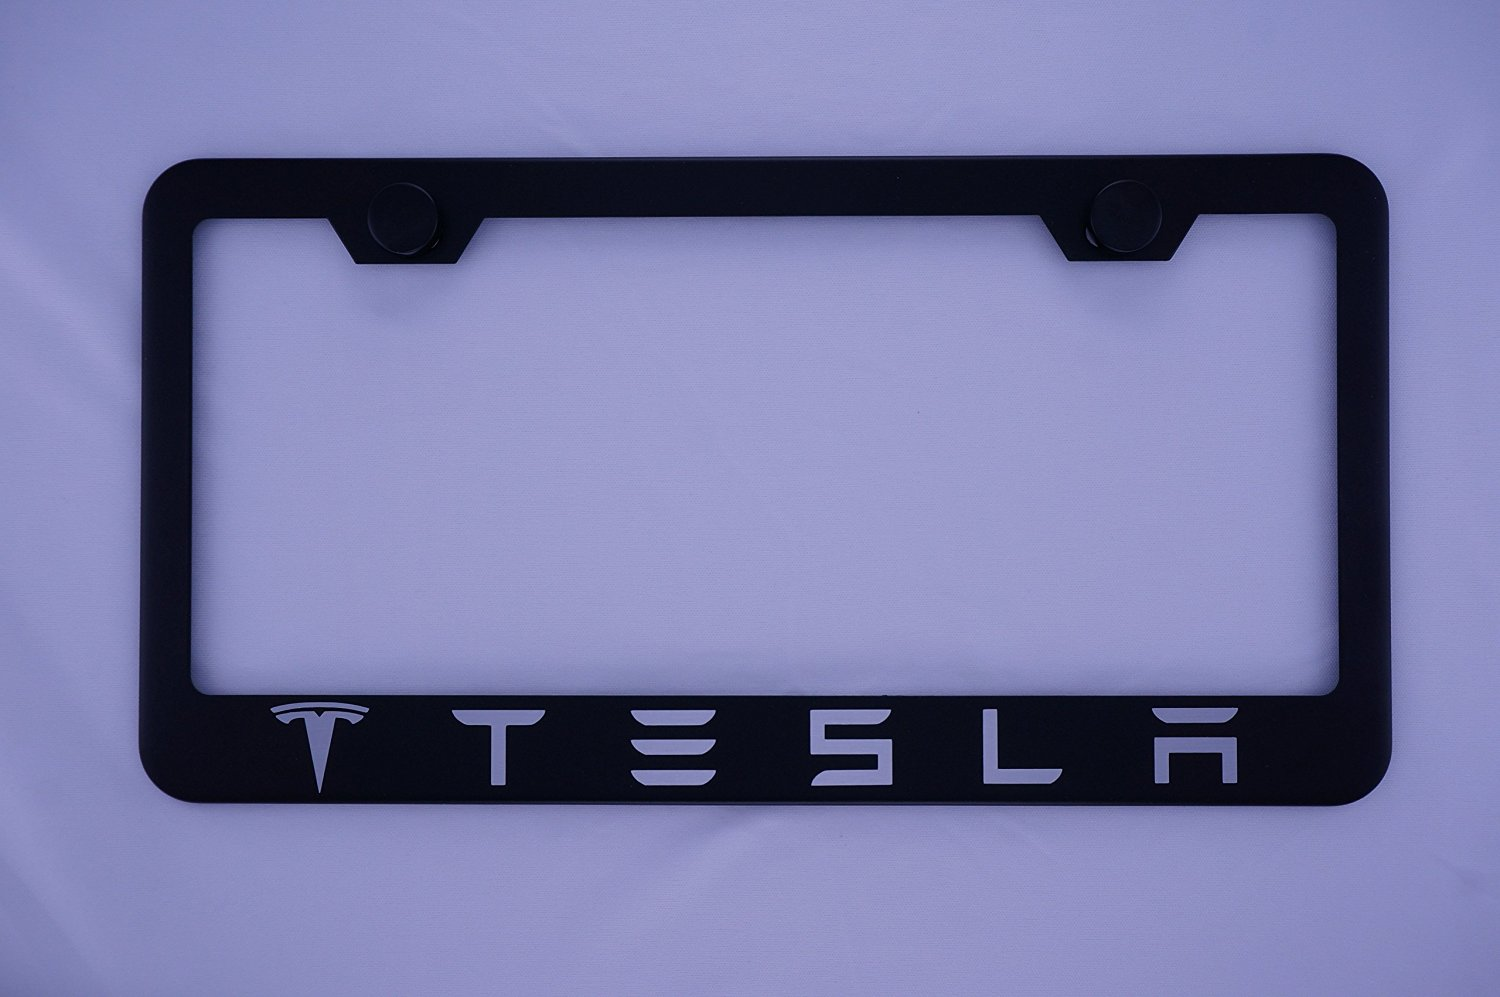 Tesla 2 Logo Car Tag Diamond Etched on White Aluminum License Plate